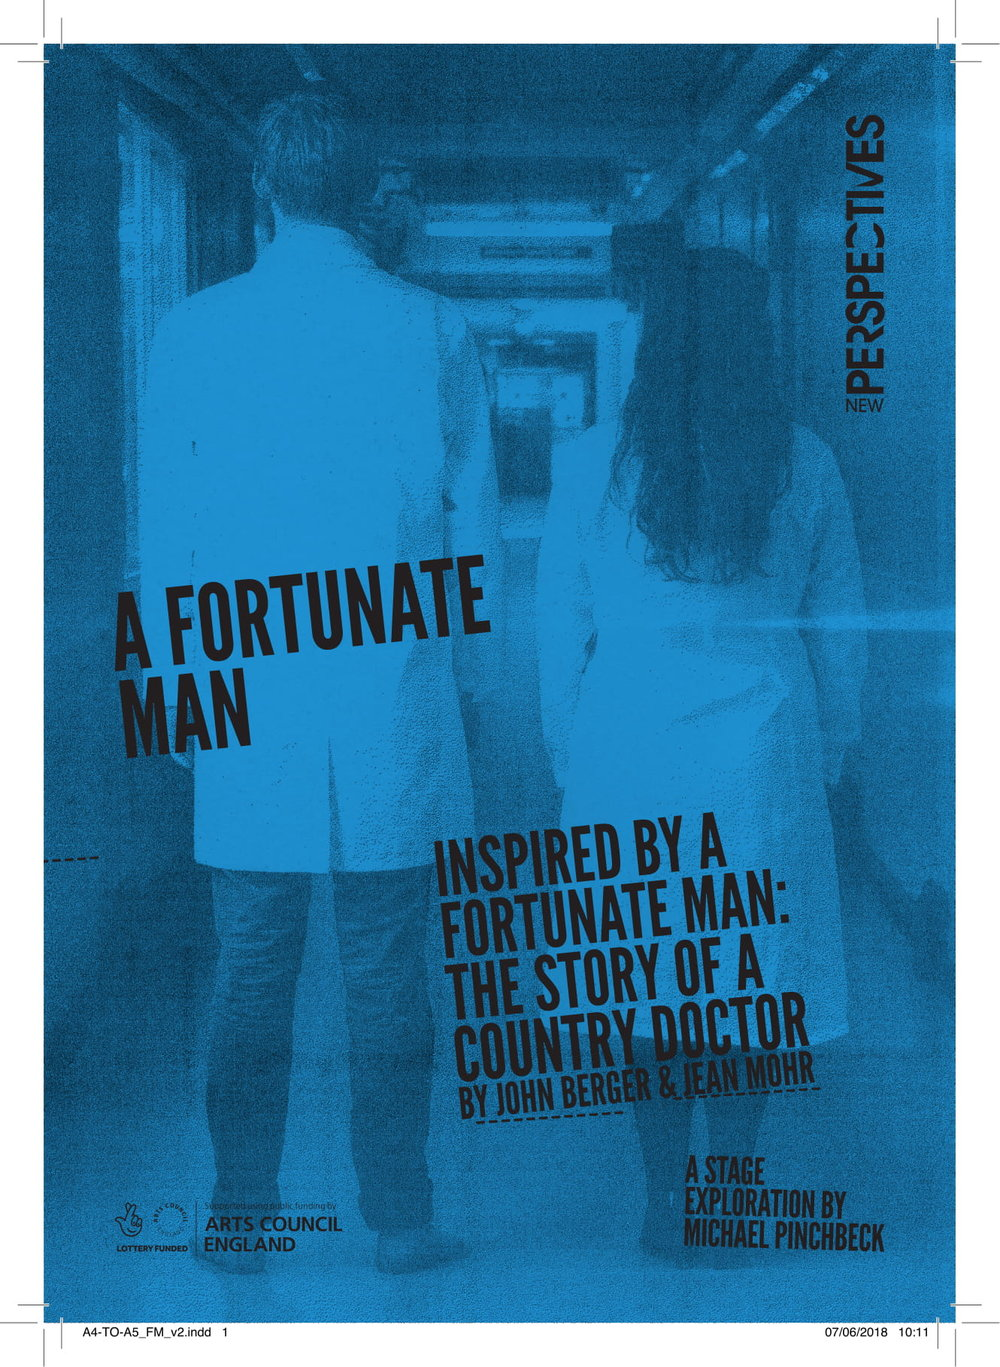 extracted_NEW PERSPECTIVES A Fortunate Man - programme-1.jpg